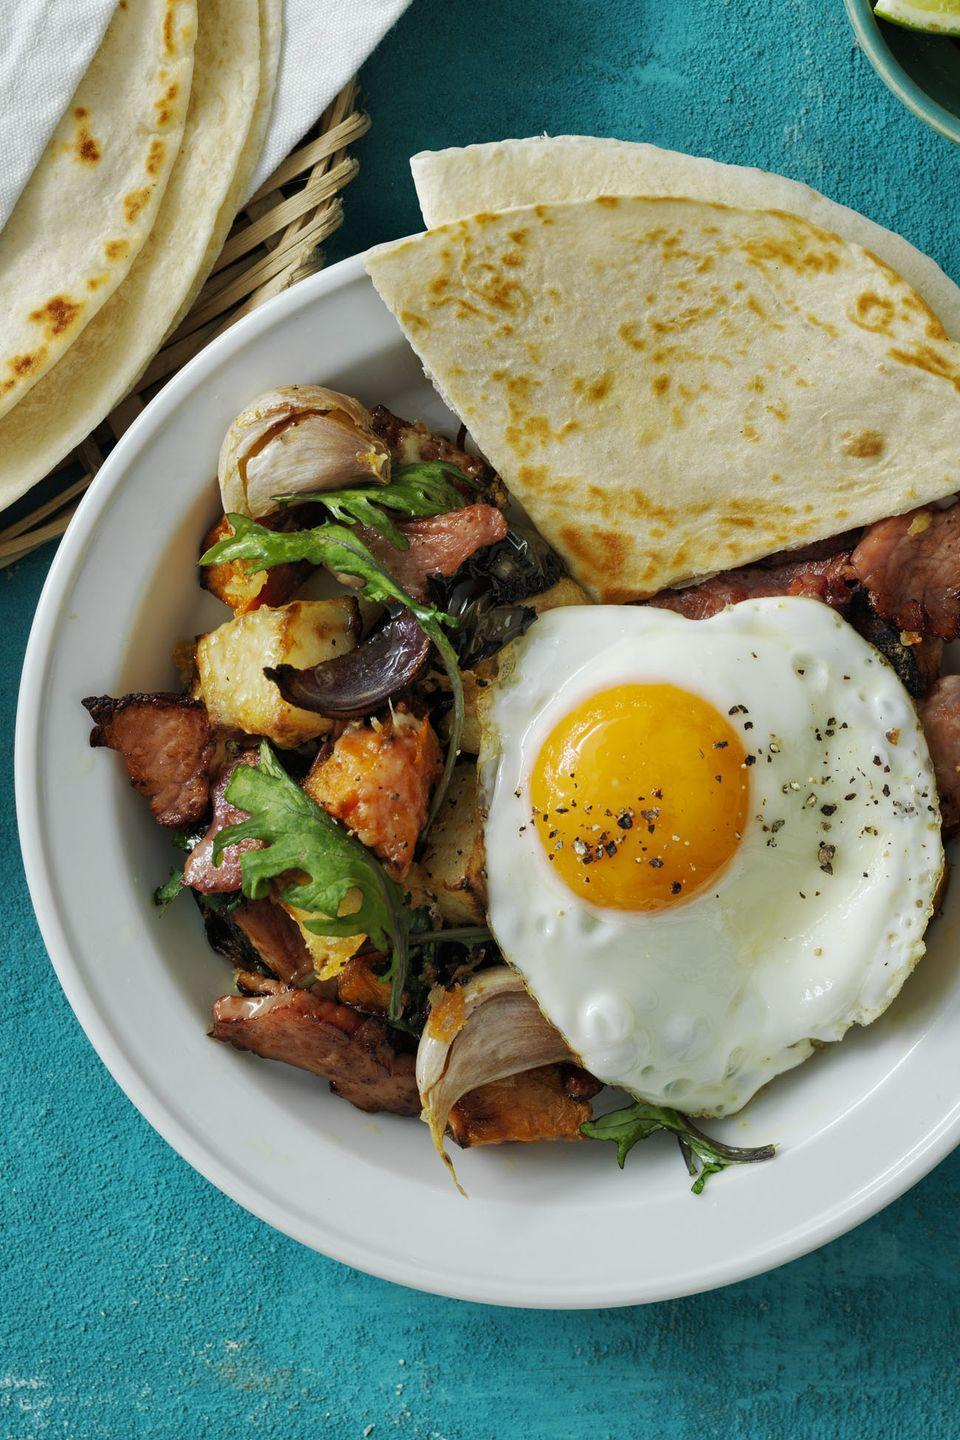 """<p>Kale, sweet potato, ham, and cheddar make up this unforgettable hash that works for any meal of the day.</p><p><em><a href=""""https://www.womansday.com/food-recipes/food-drinks/recipes/a58141/roasted-poblano-potato-ham-hash/?visibilityoverride"""" rel=""""nofollow noopener"""" target=""""_blank"""" data-ylk=""""slk:Get the Roasted Poblano Potato and Ham Hash recipe."""" class=""""link rapid-noclick-resp"""">Get the Roasted Poblano Potato and Ham Hash recipe.</a></em></p>"""